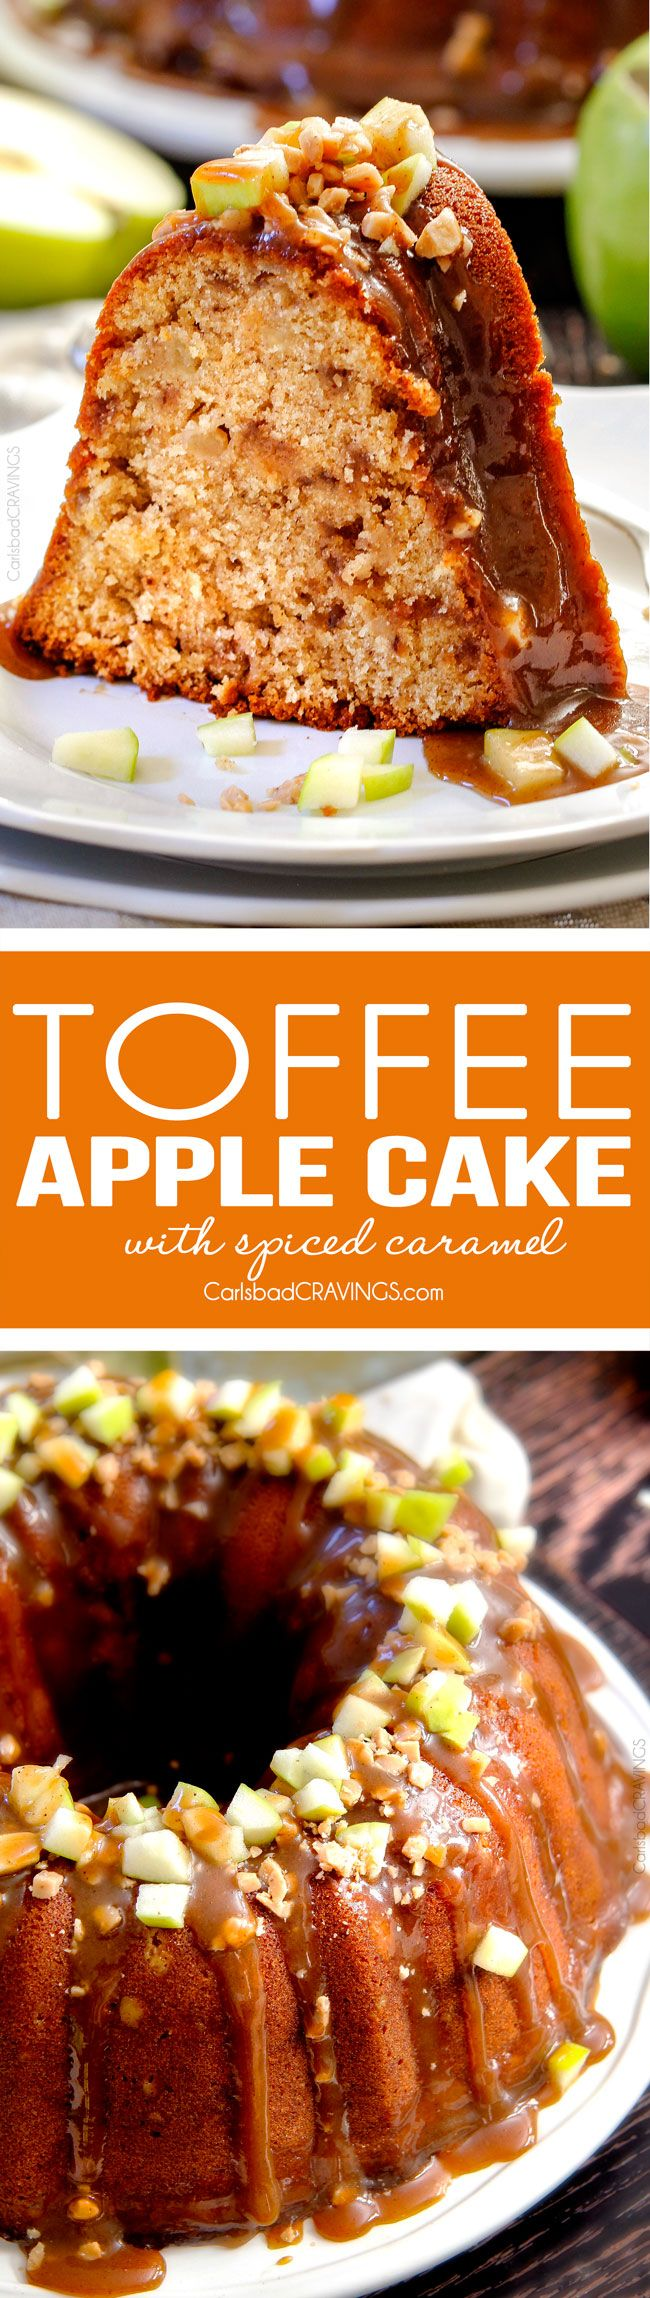 My FAVORITE apple cake! Toffee Apple Pound Cake with the most incredible Spiced Caramel bursting with sweet toffee bits and apples in every bite! Everyone goes crazy over this cake! via @carlsbadcrav (Apple Cake)